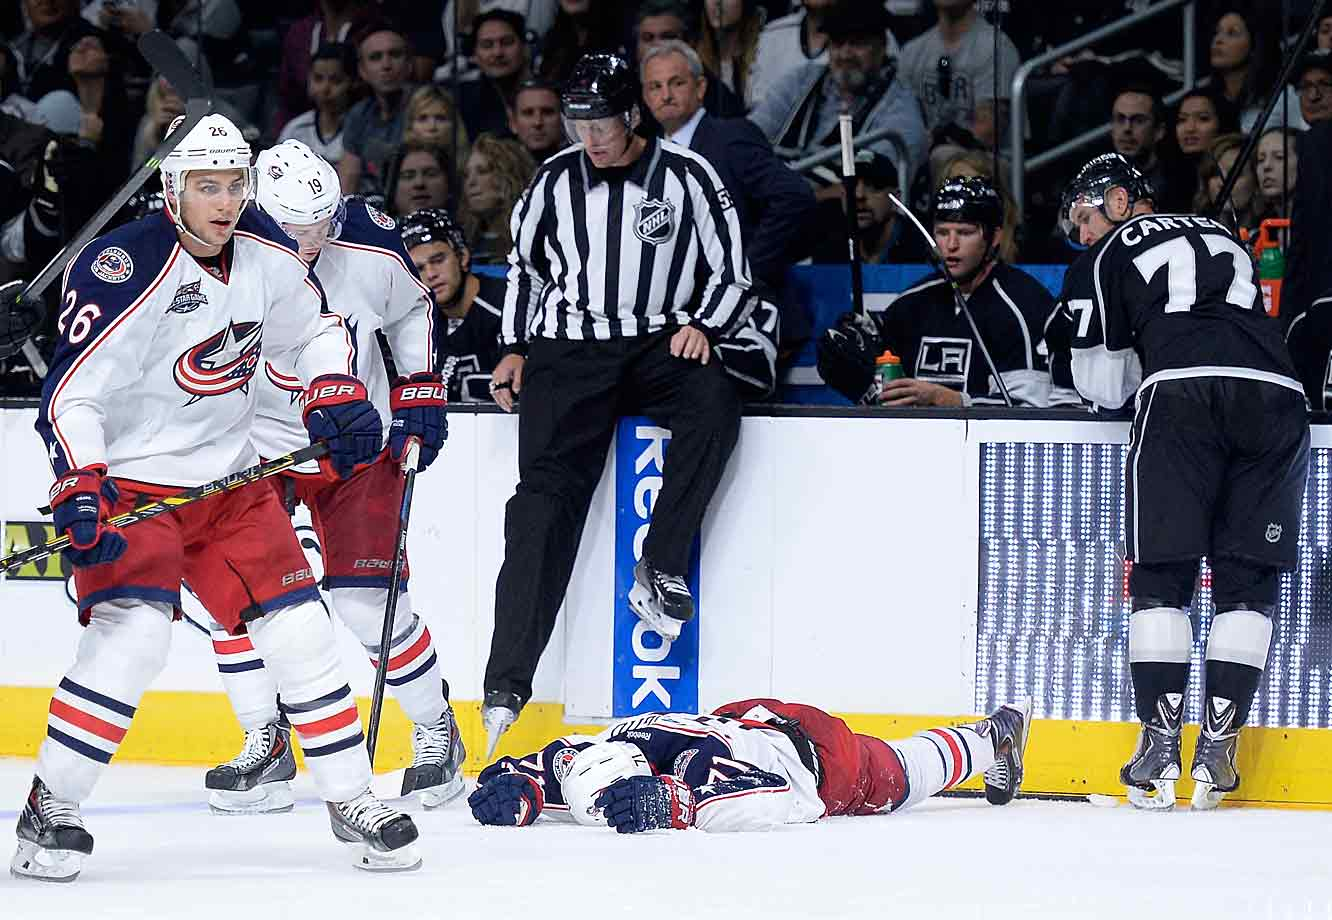 The Blue Jackets forward lies hors de combat on the ice after hitting his head on an official in a collision along the boards during a game against the Kings at Staples Center in L.A. on Oct. 26, 2014. Foligno left the ice on a stretcher, part of a wave of injuries that hit Columbus.